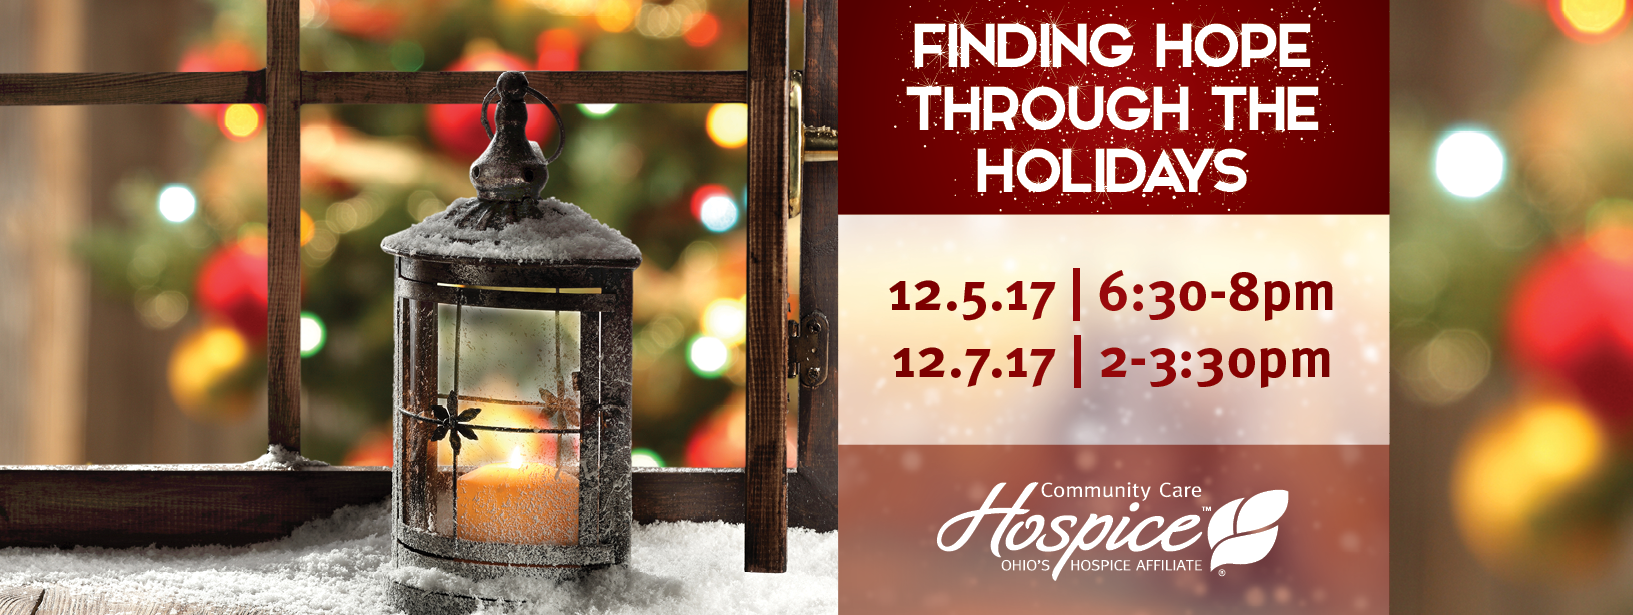 Community Care Hospice Offers Hope Through The Holidays For Families Who Have Lost A Loved One